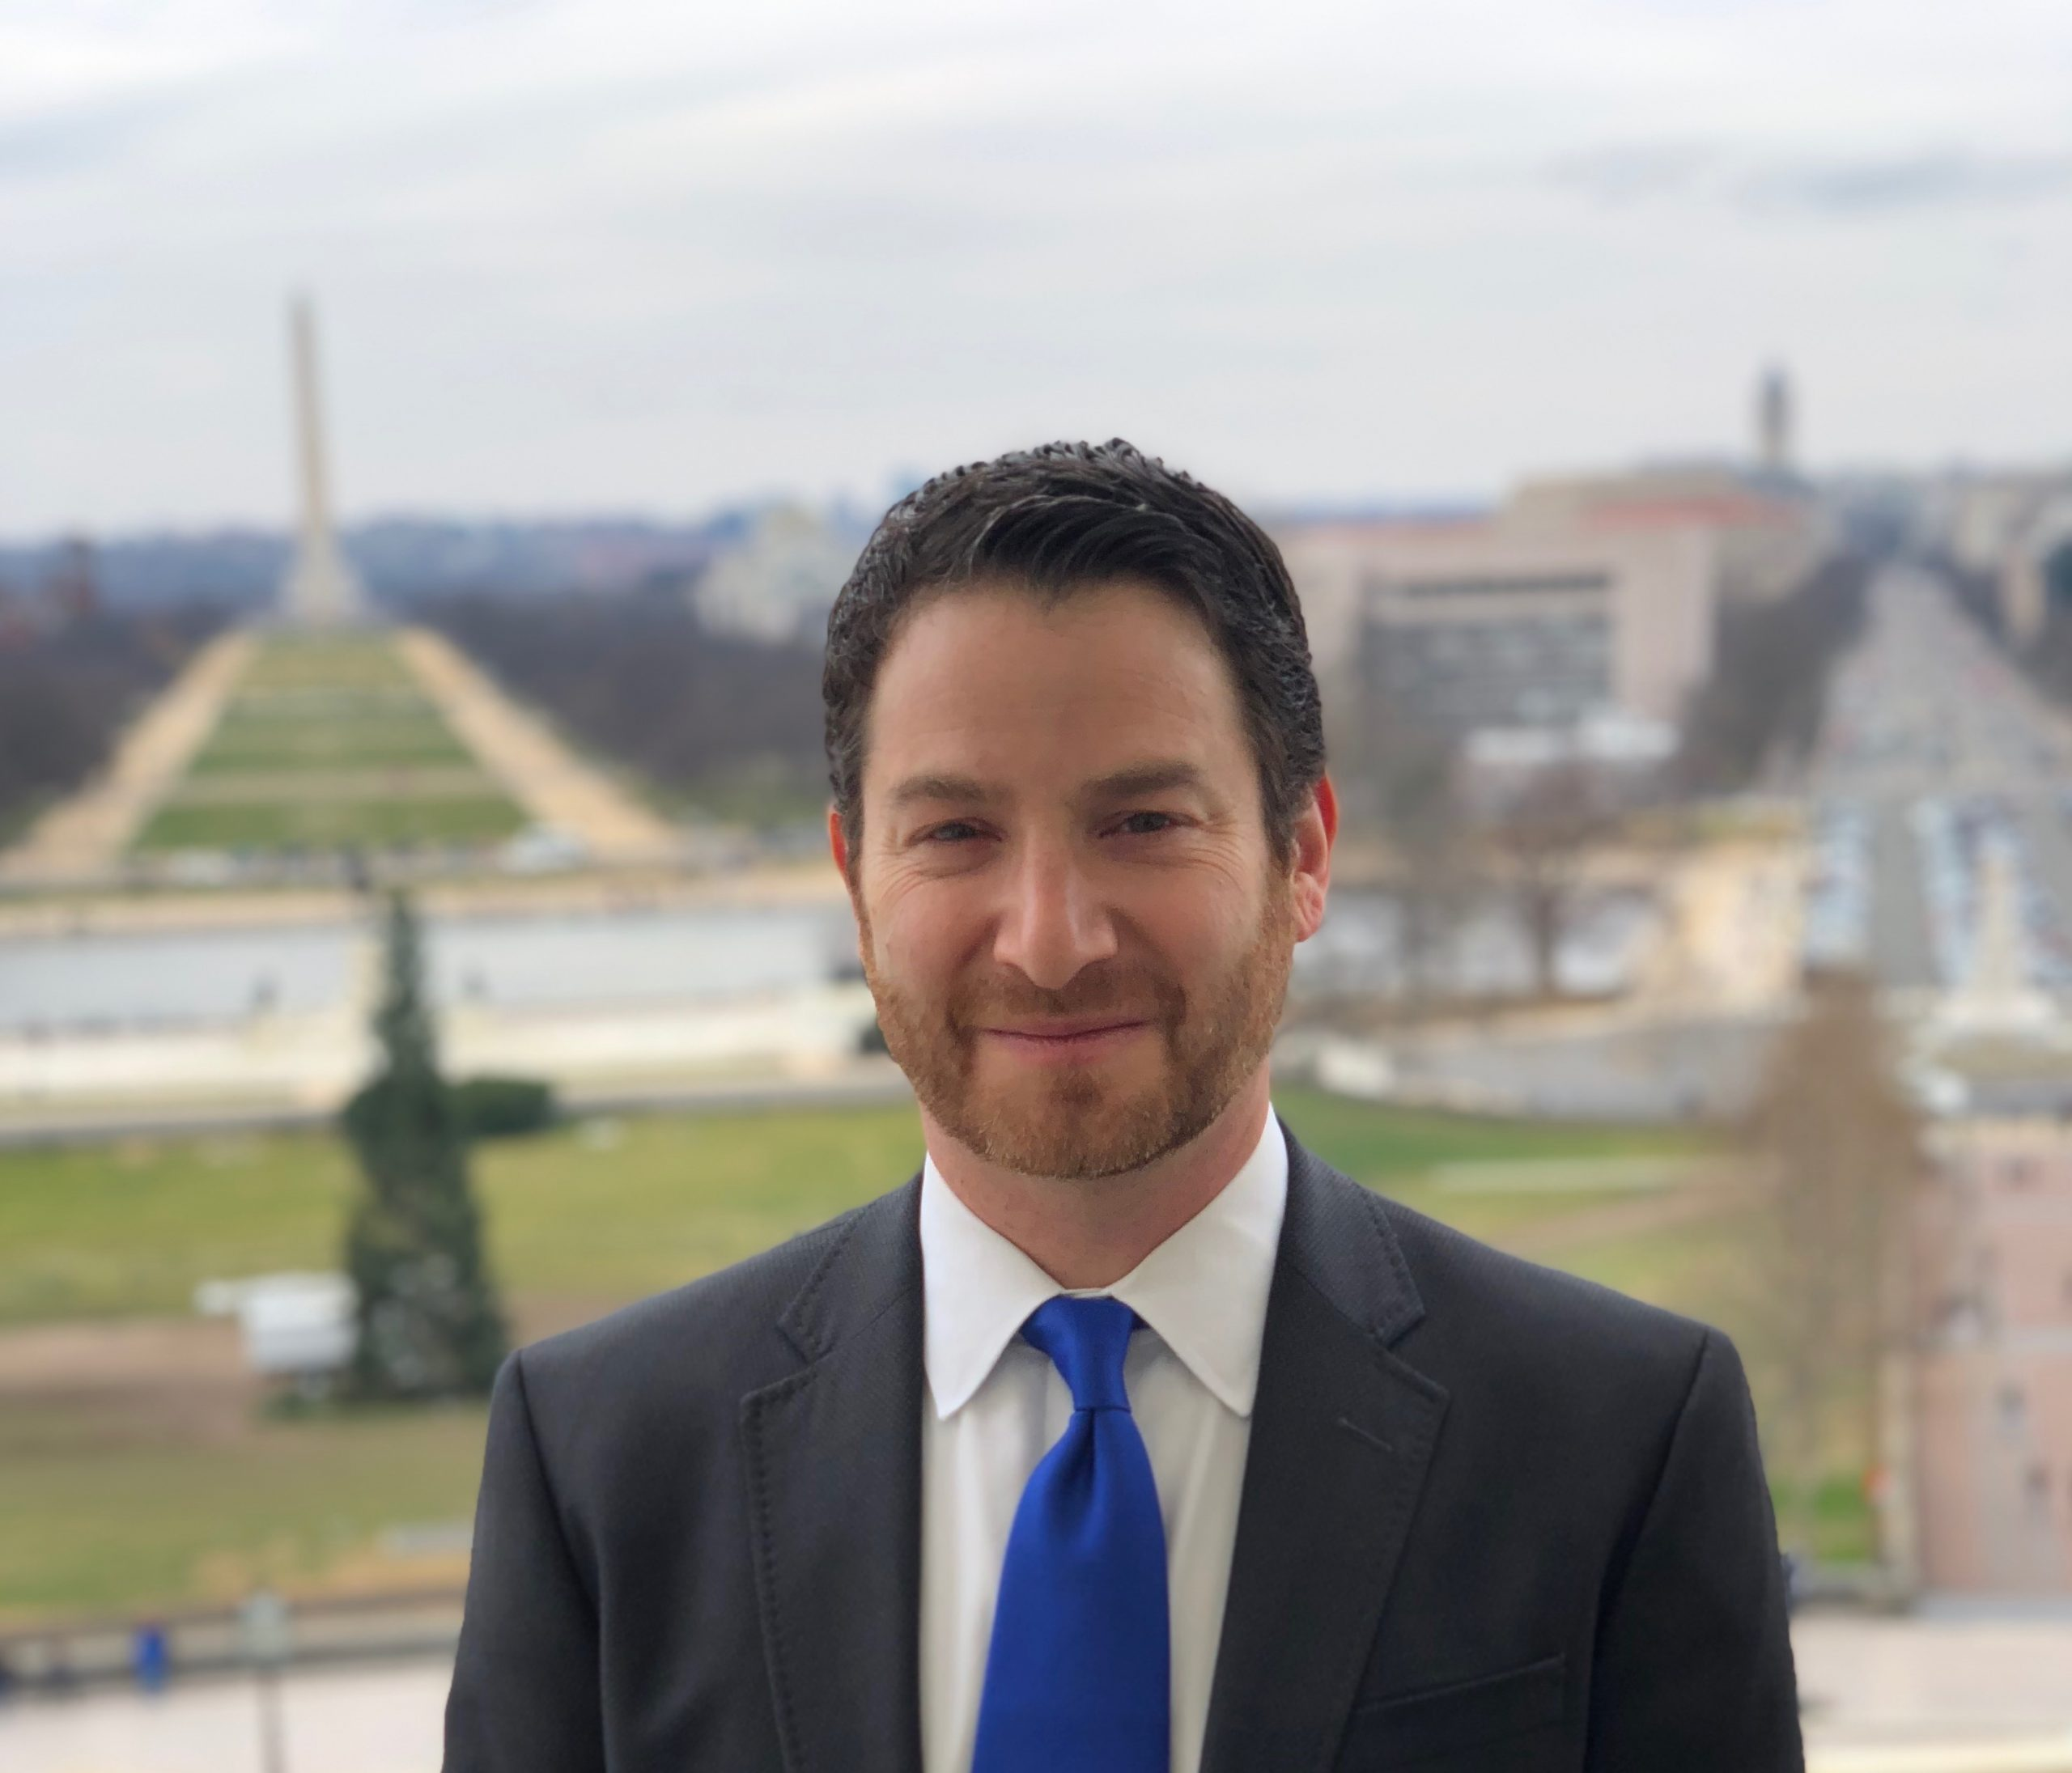 Joel Rubin appointed as Executive Director of the American Jewish Congress